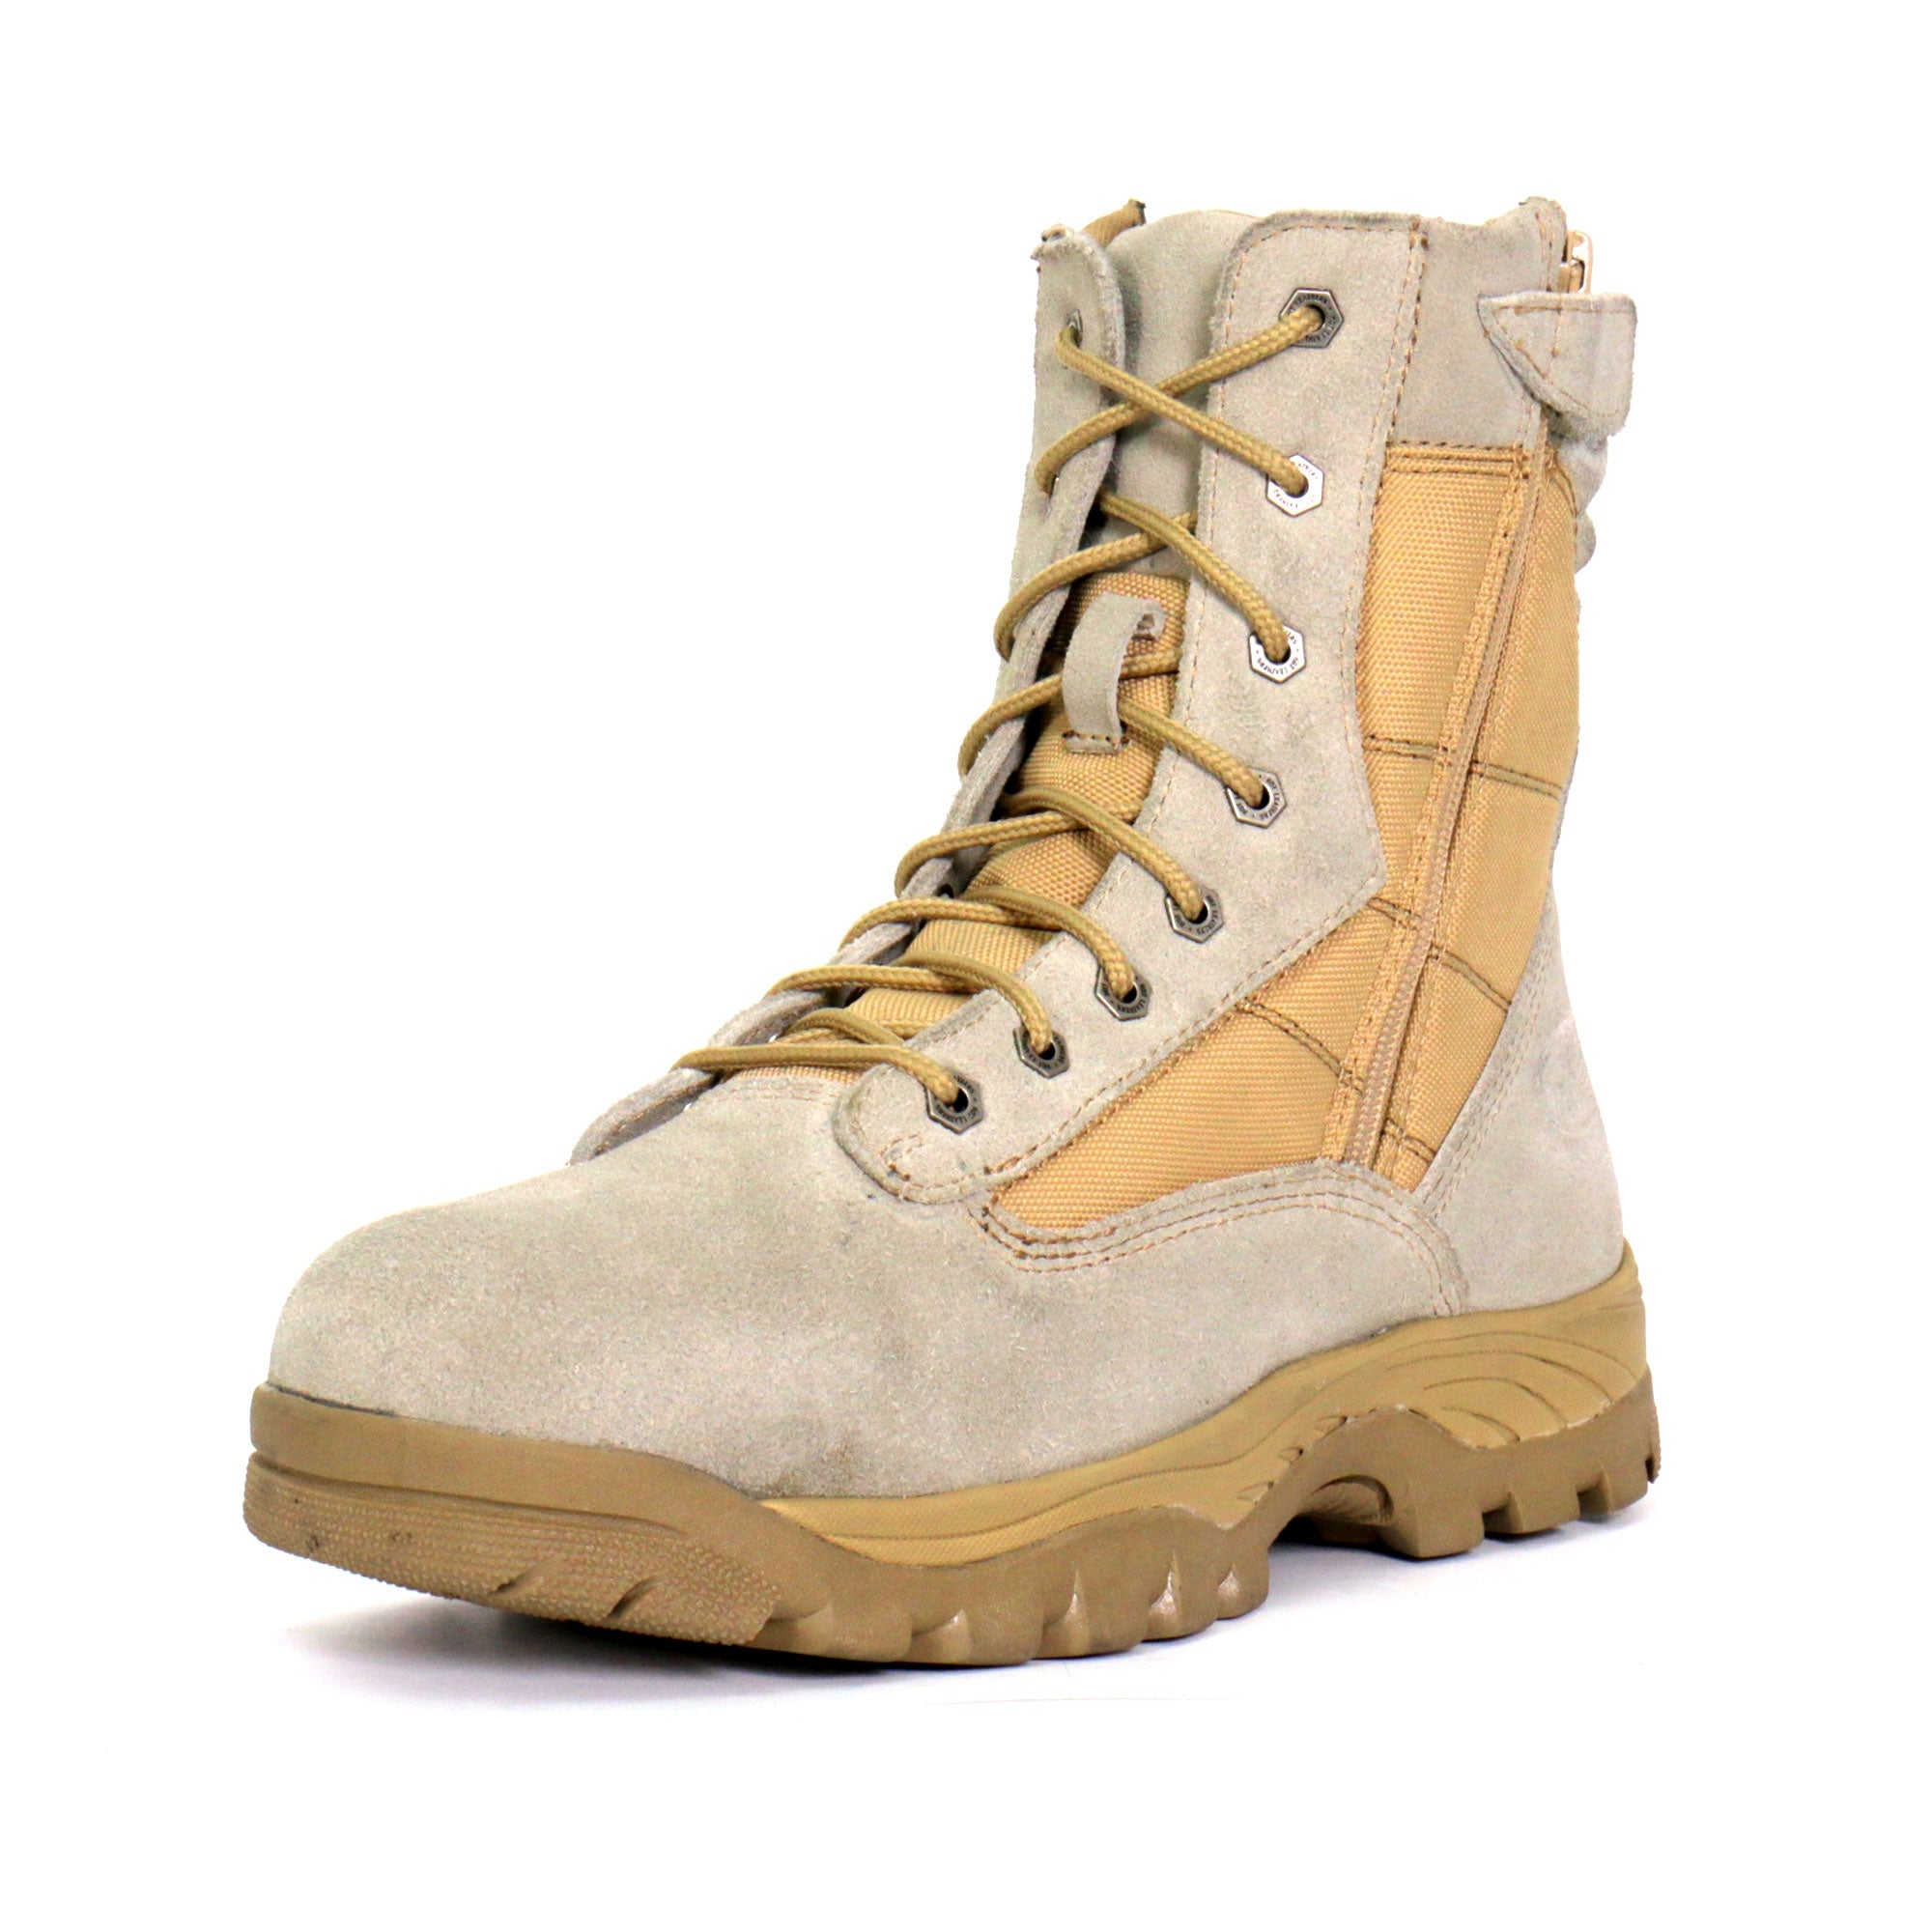 Hot Leathers Military Desert Tan Boots